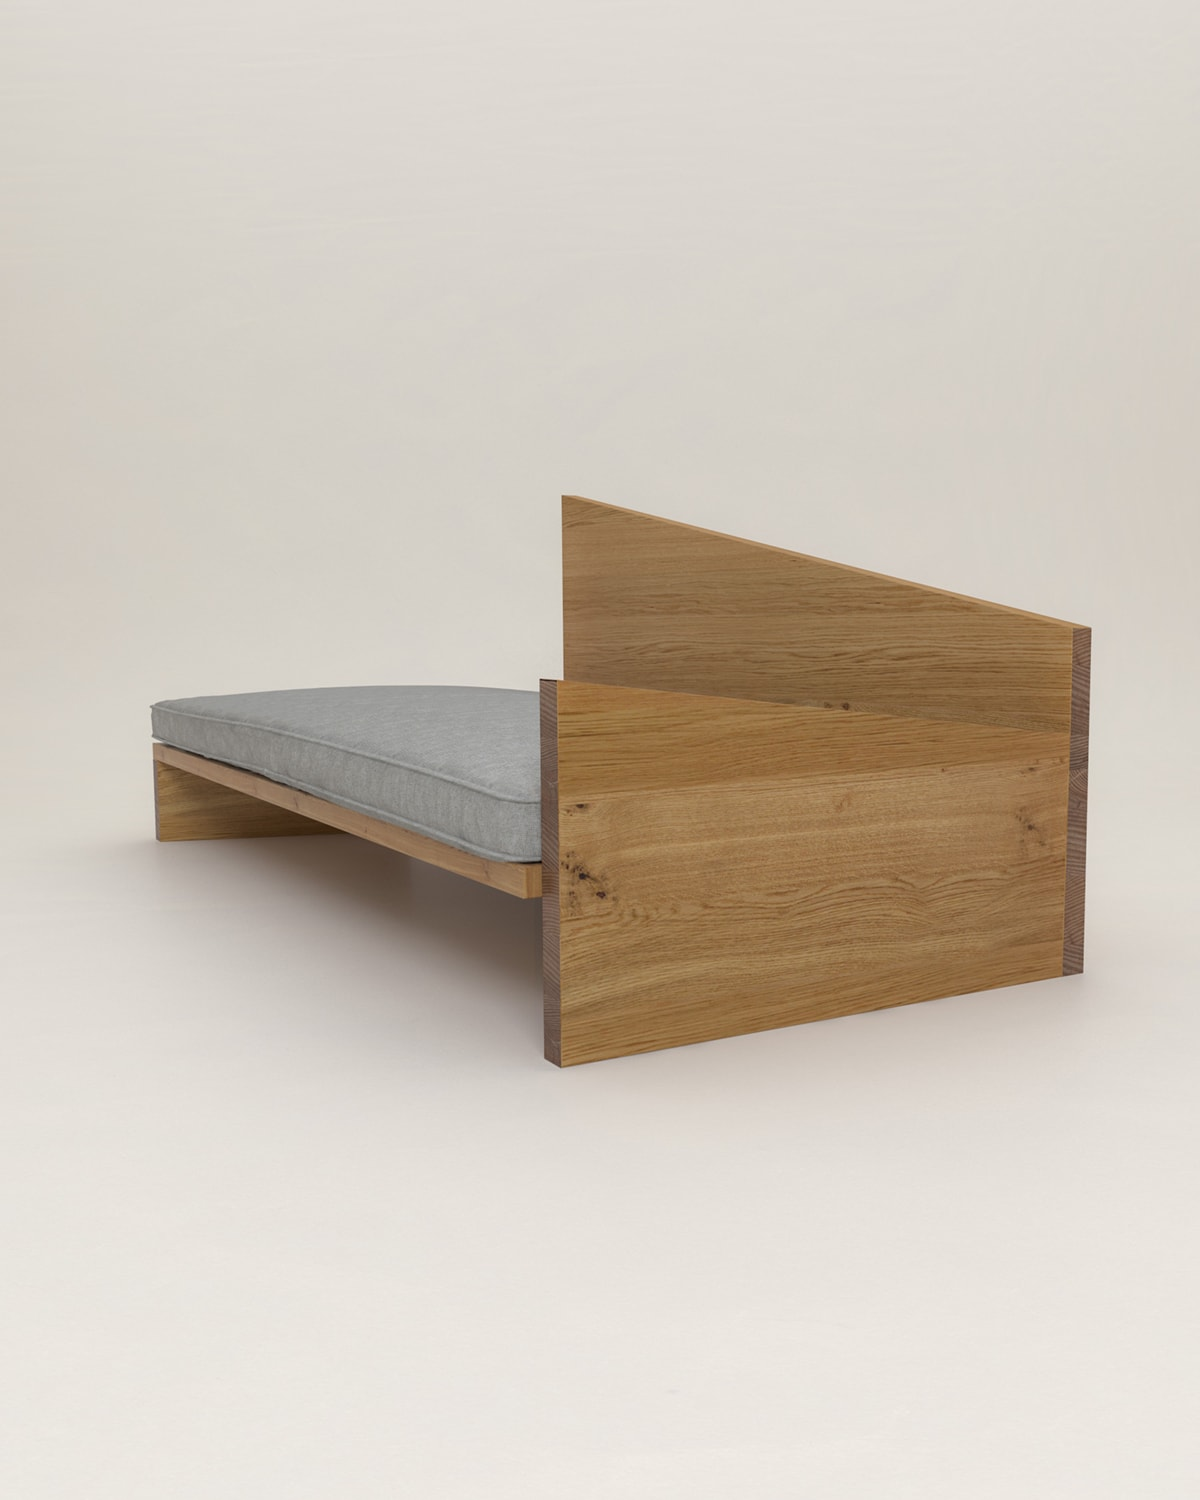 crooked_daybed_01_1